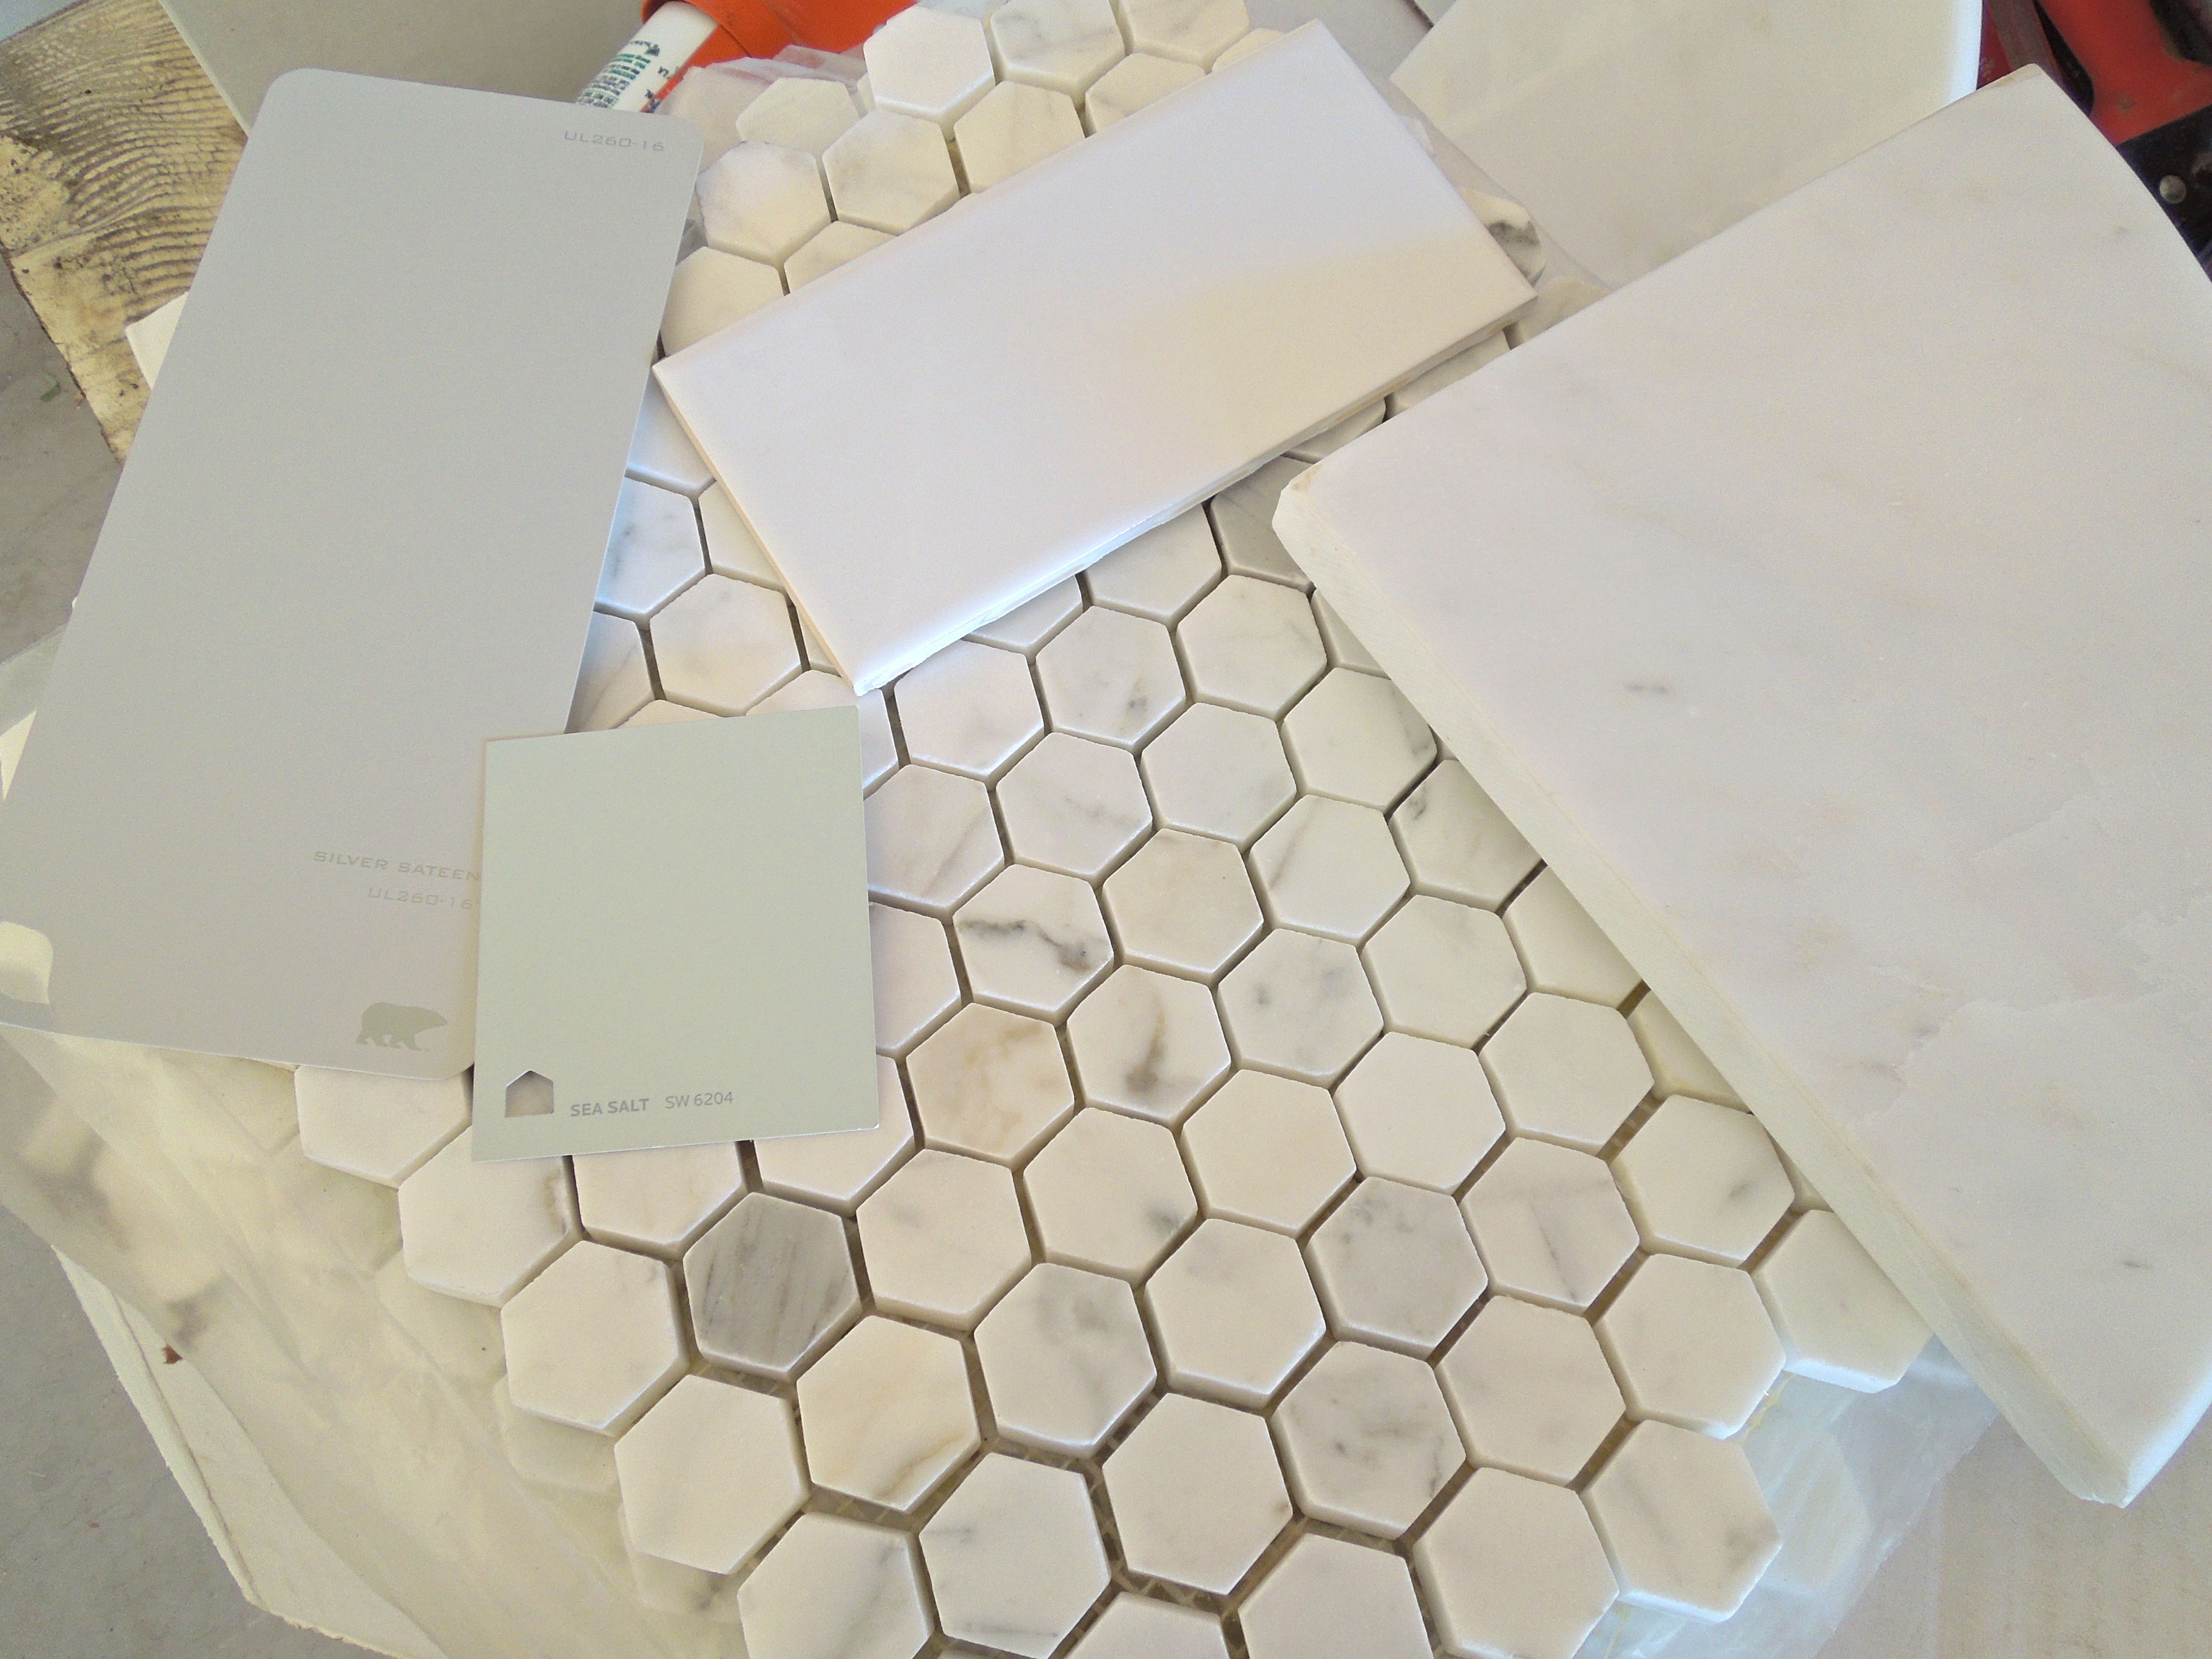 Grey subway tile shower honeycomb marble floors subway tile me bathroom flooring such ideas pinner grey subway tile shower honeycomb marble floors subway tile shower grey cabinets mint walls dailygadgetfo Image collections